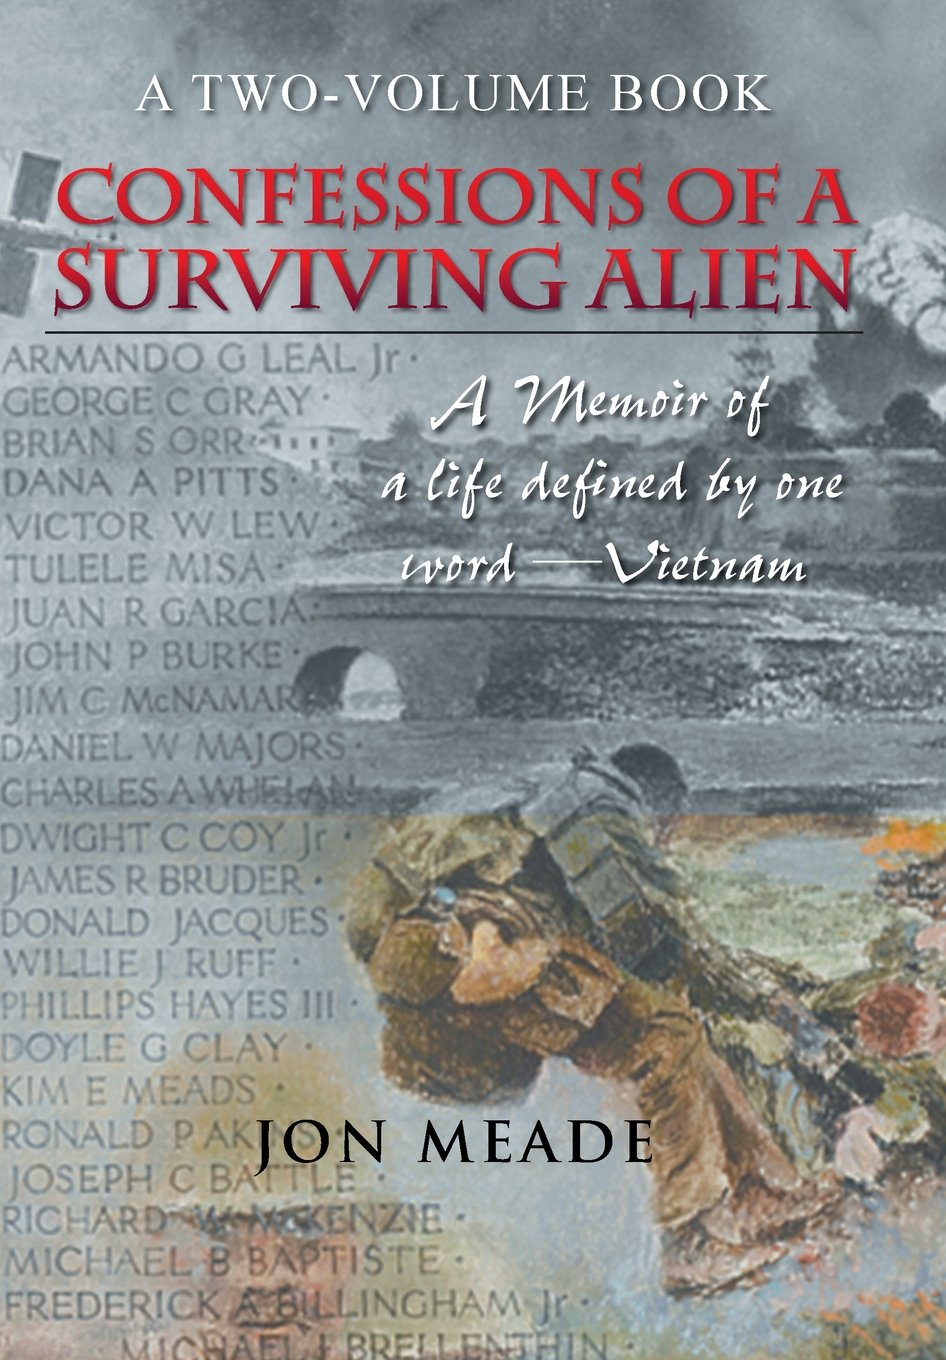 Confessions of a Surviving Alien: A Memoir of a Life Defined by One Word-Vietnam PDF